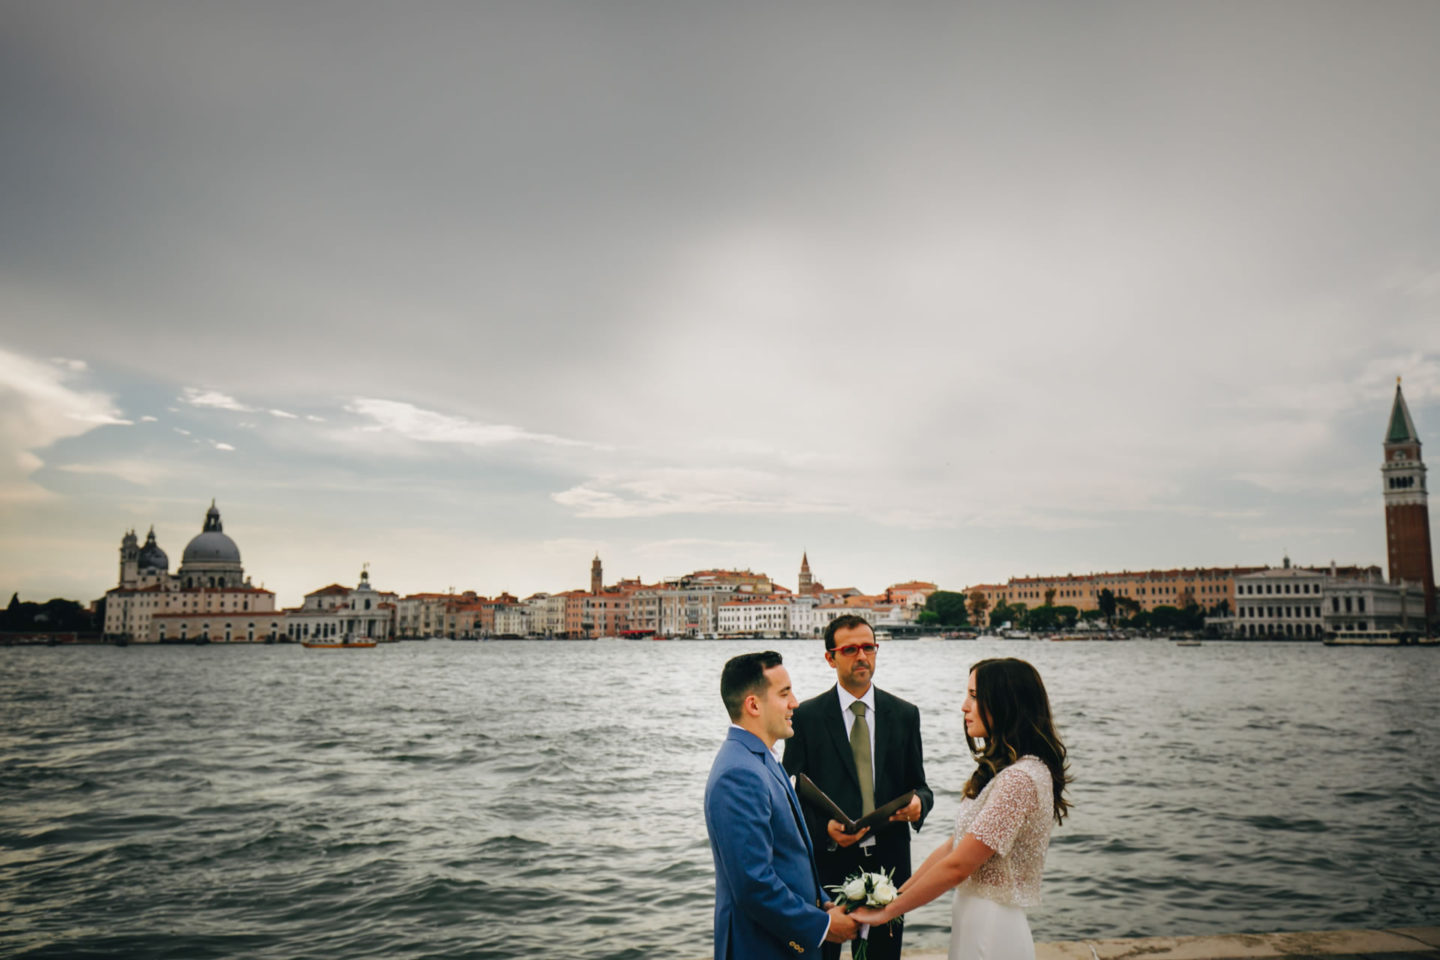 Romantic elopement in Venice :: Luxury wedding photography - 11